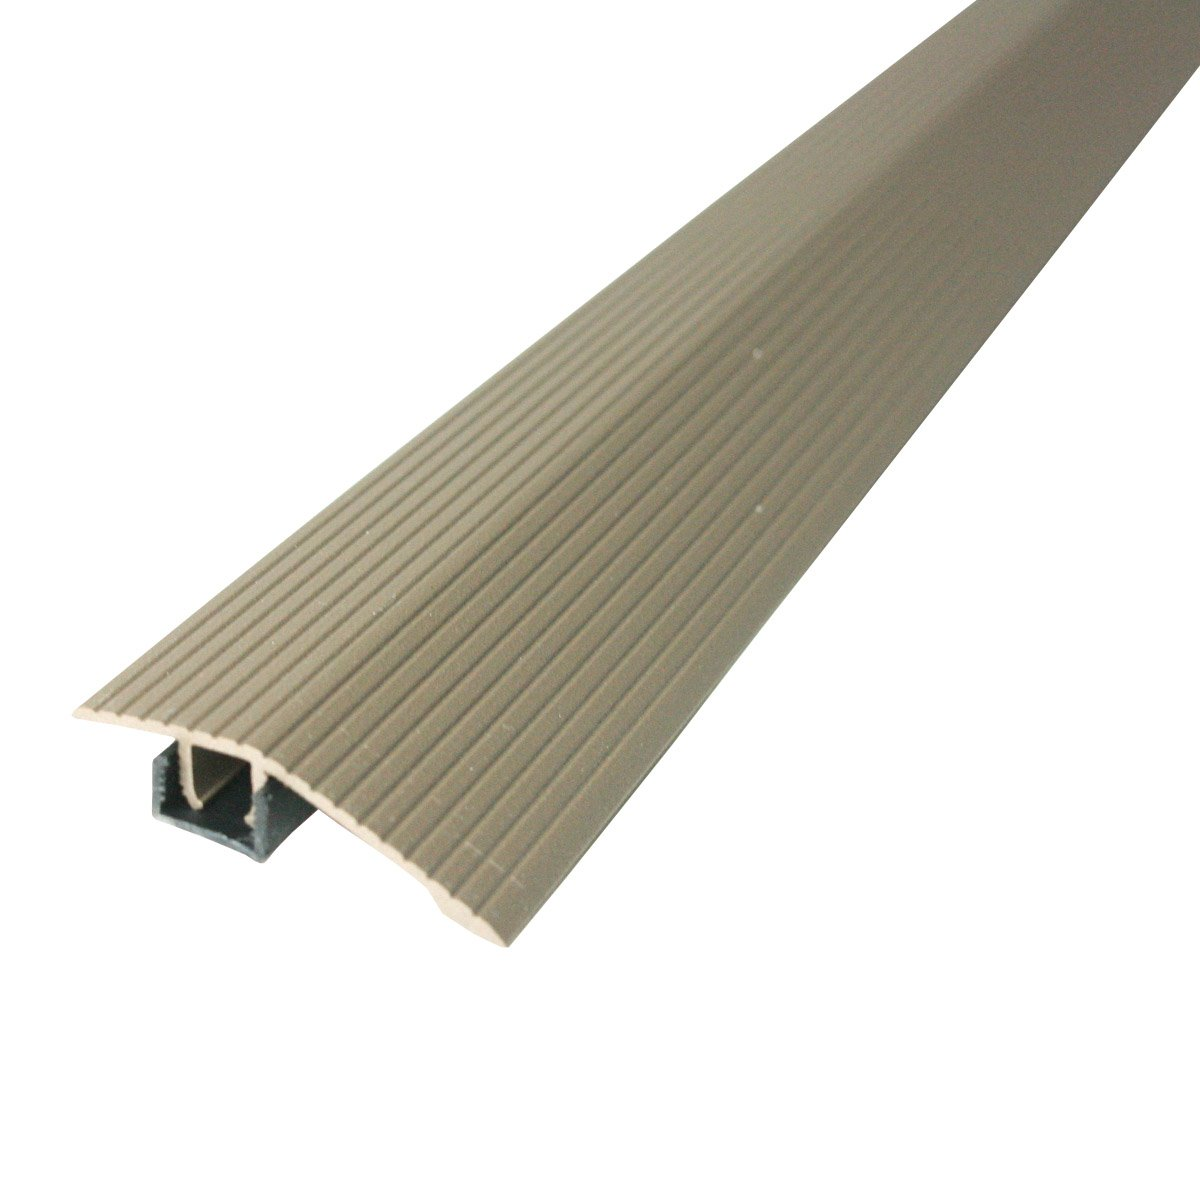 M-D Building Products Cinch Reducer (Fluted) w/SnapTrack 36'' Spice Spice